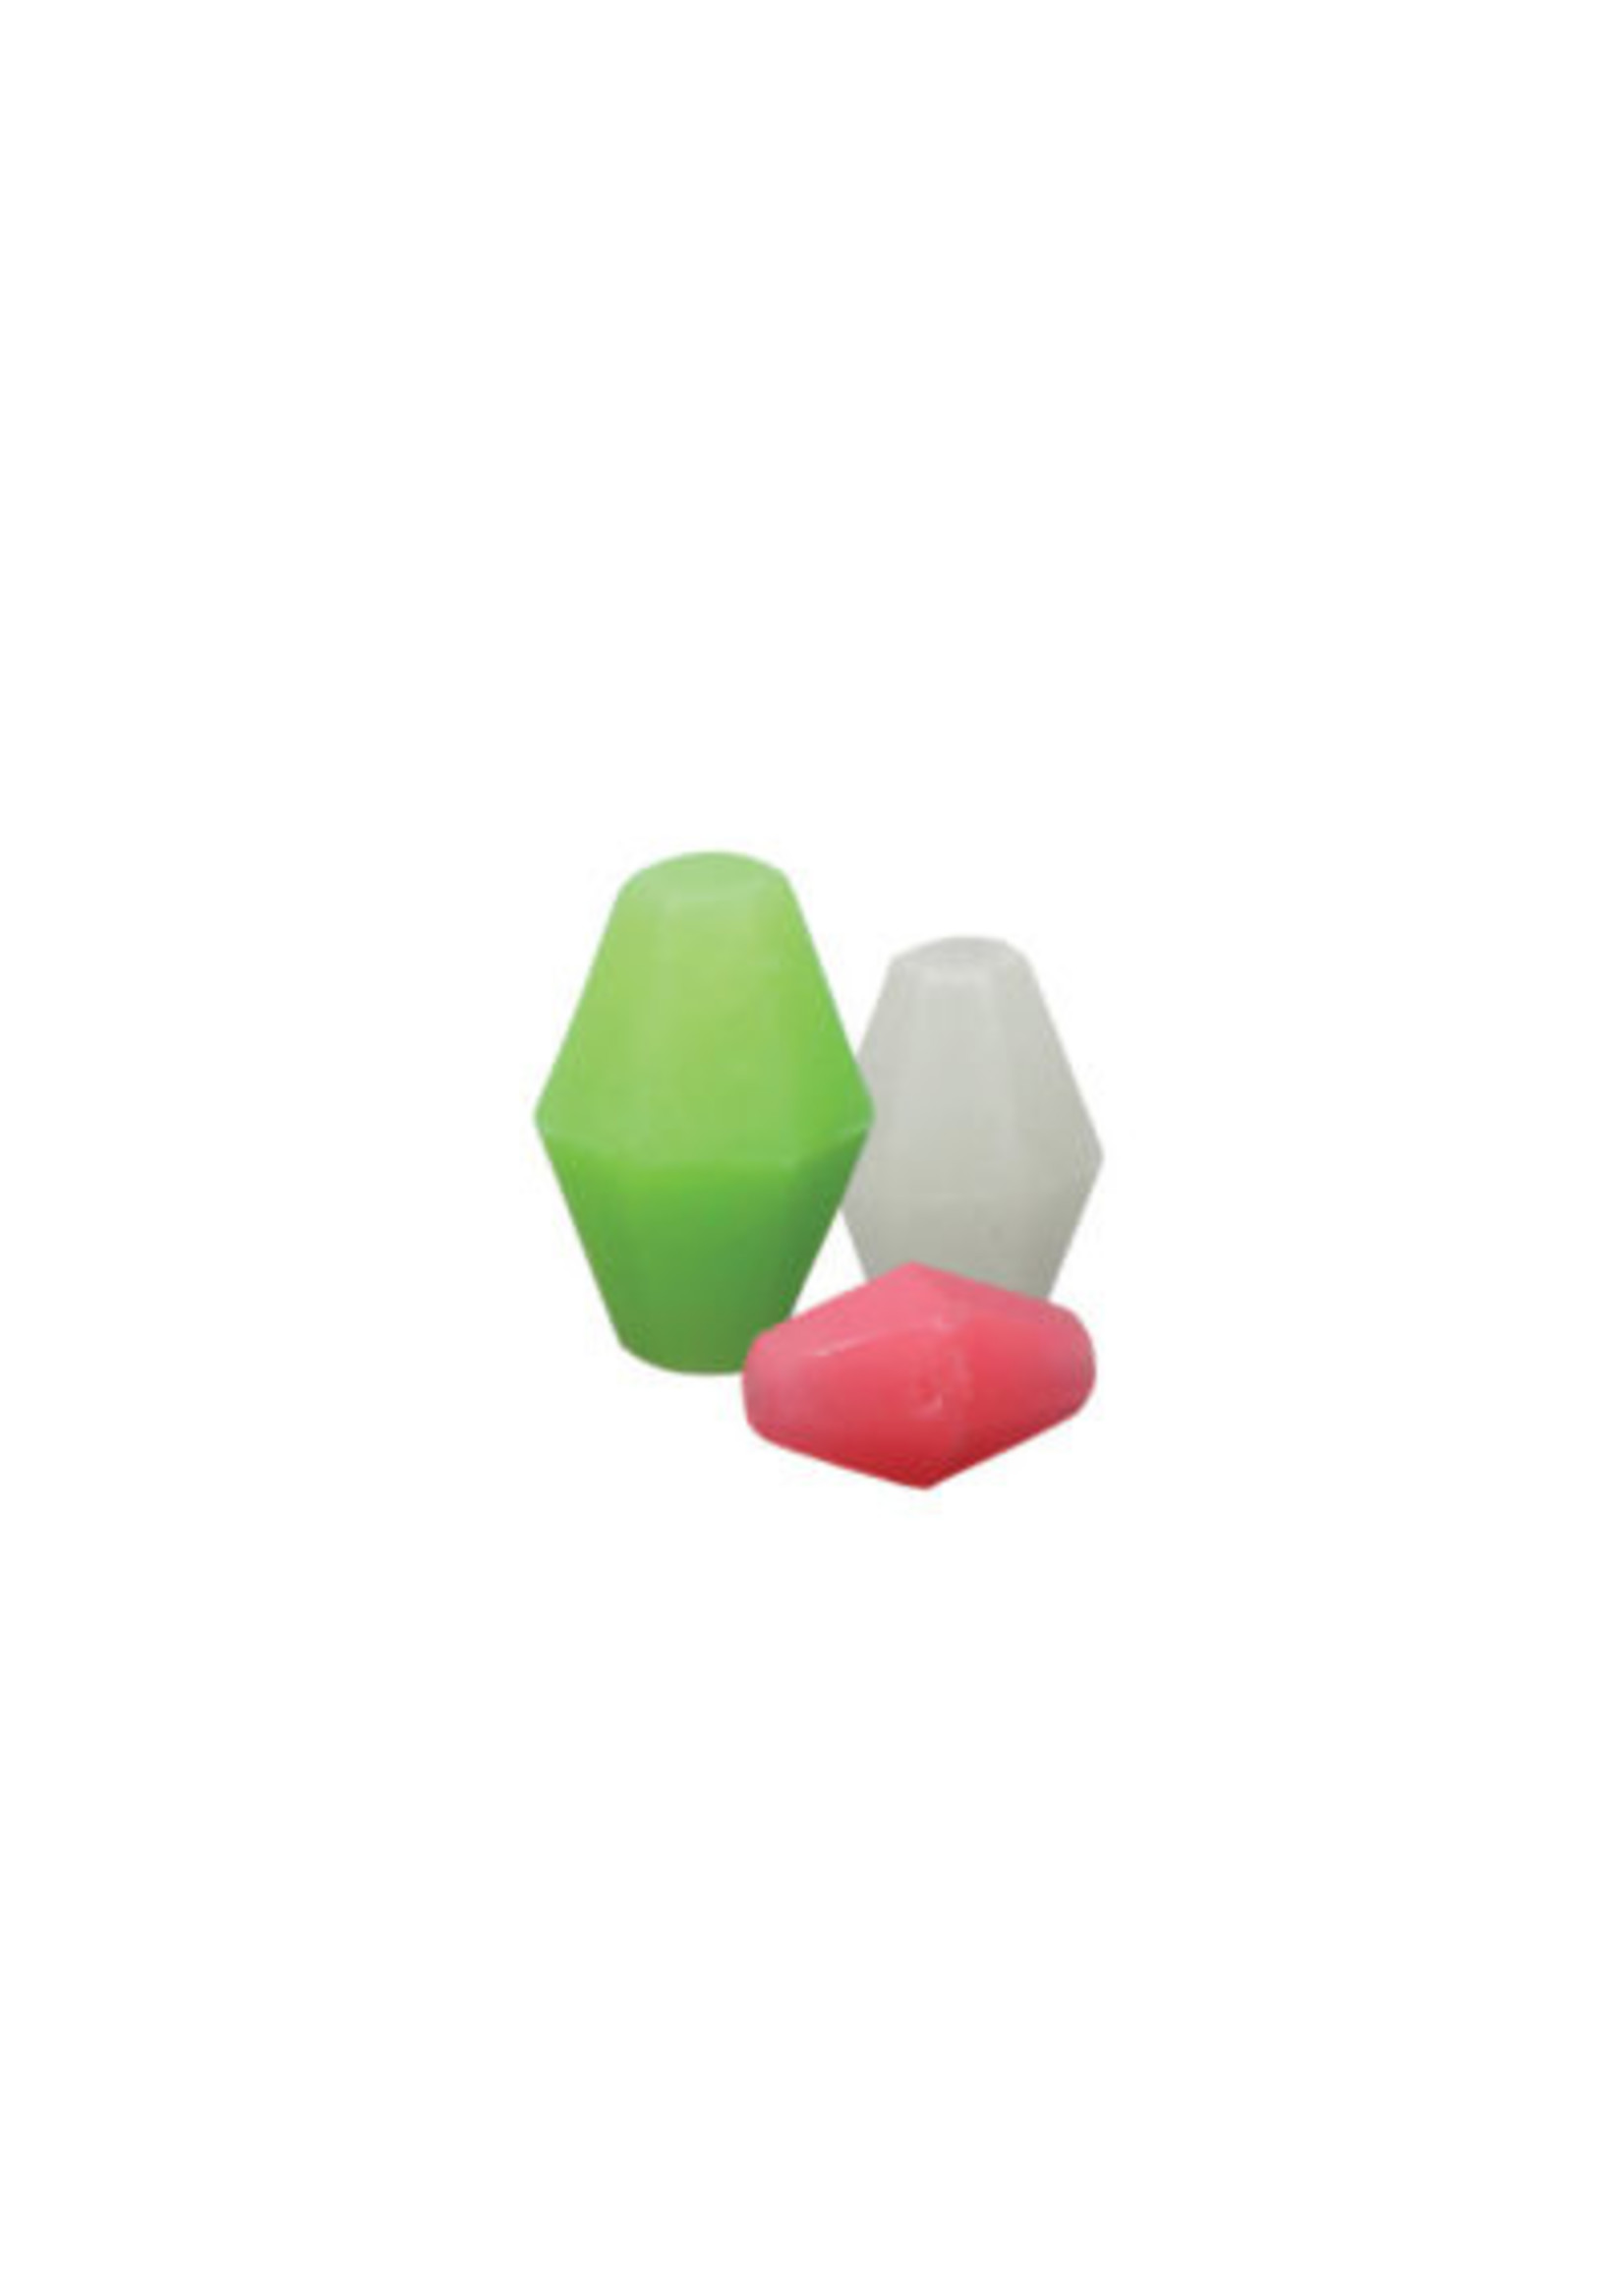 Owner Owner UV Soft Glow Beads - Green 4